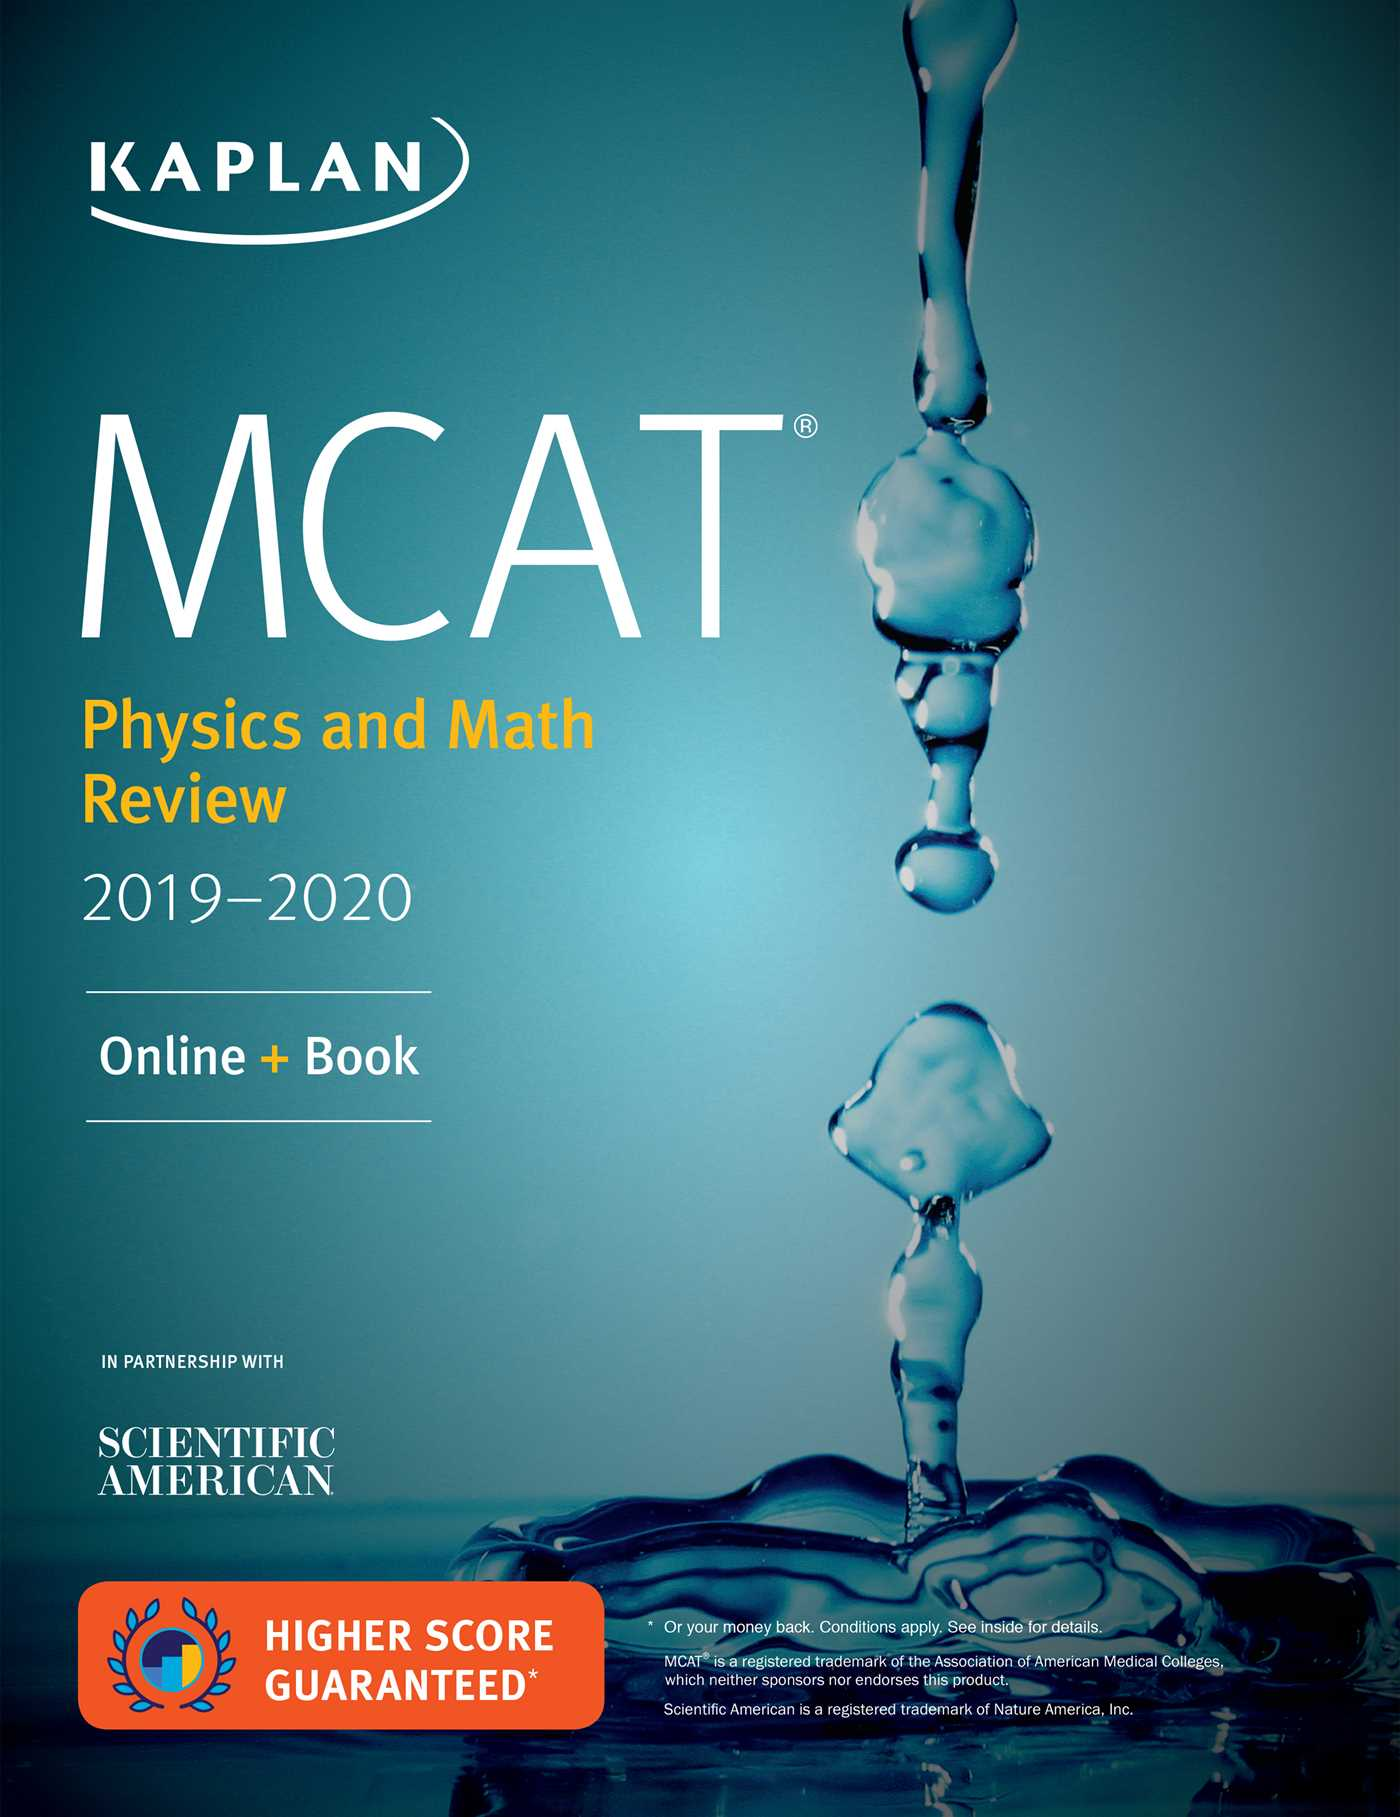 Mcat physics and math review 2019 2020 book by kaplan test prep book cover image jpg mcat physics and math review 2019 2020 fandeluxe Image collections